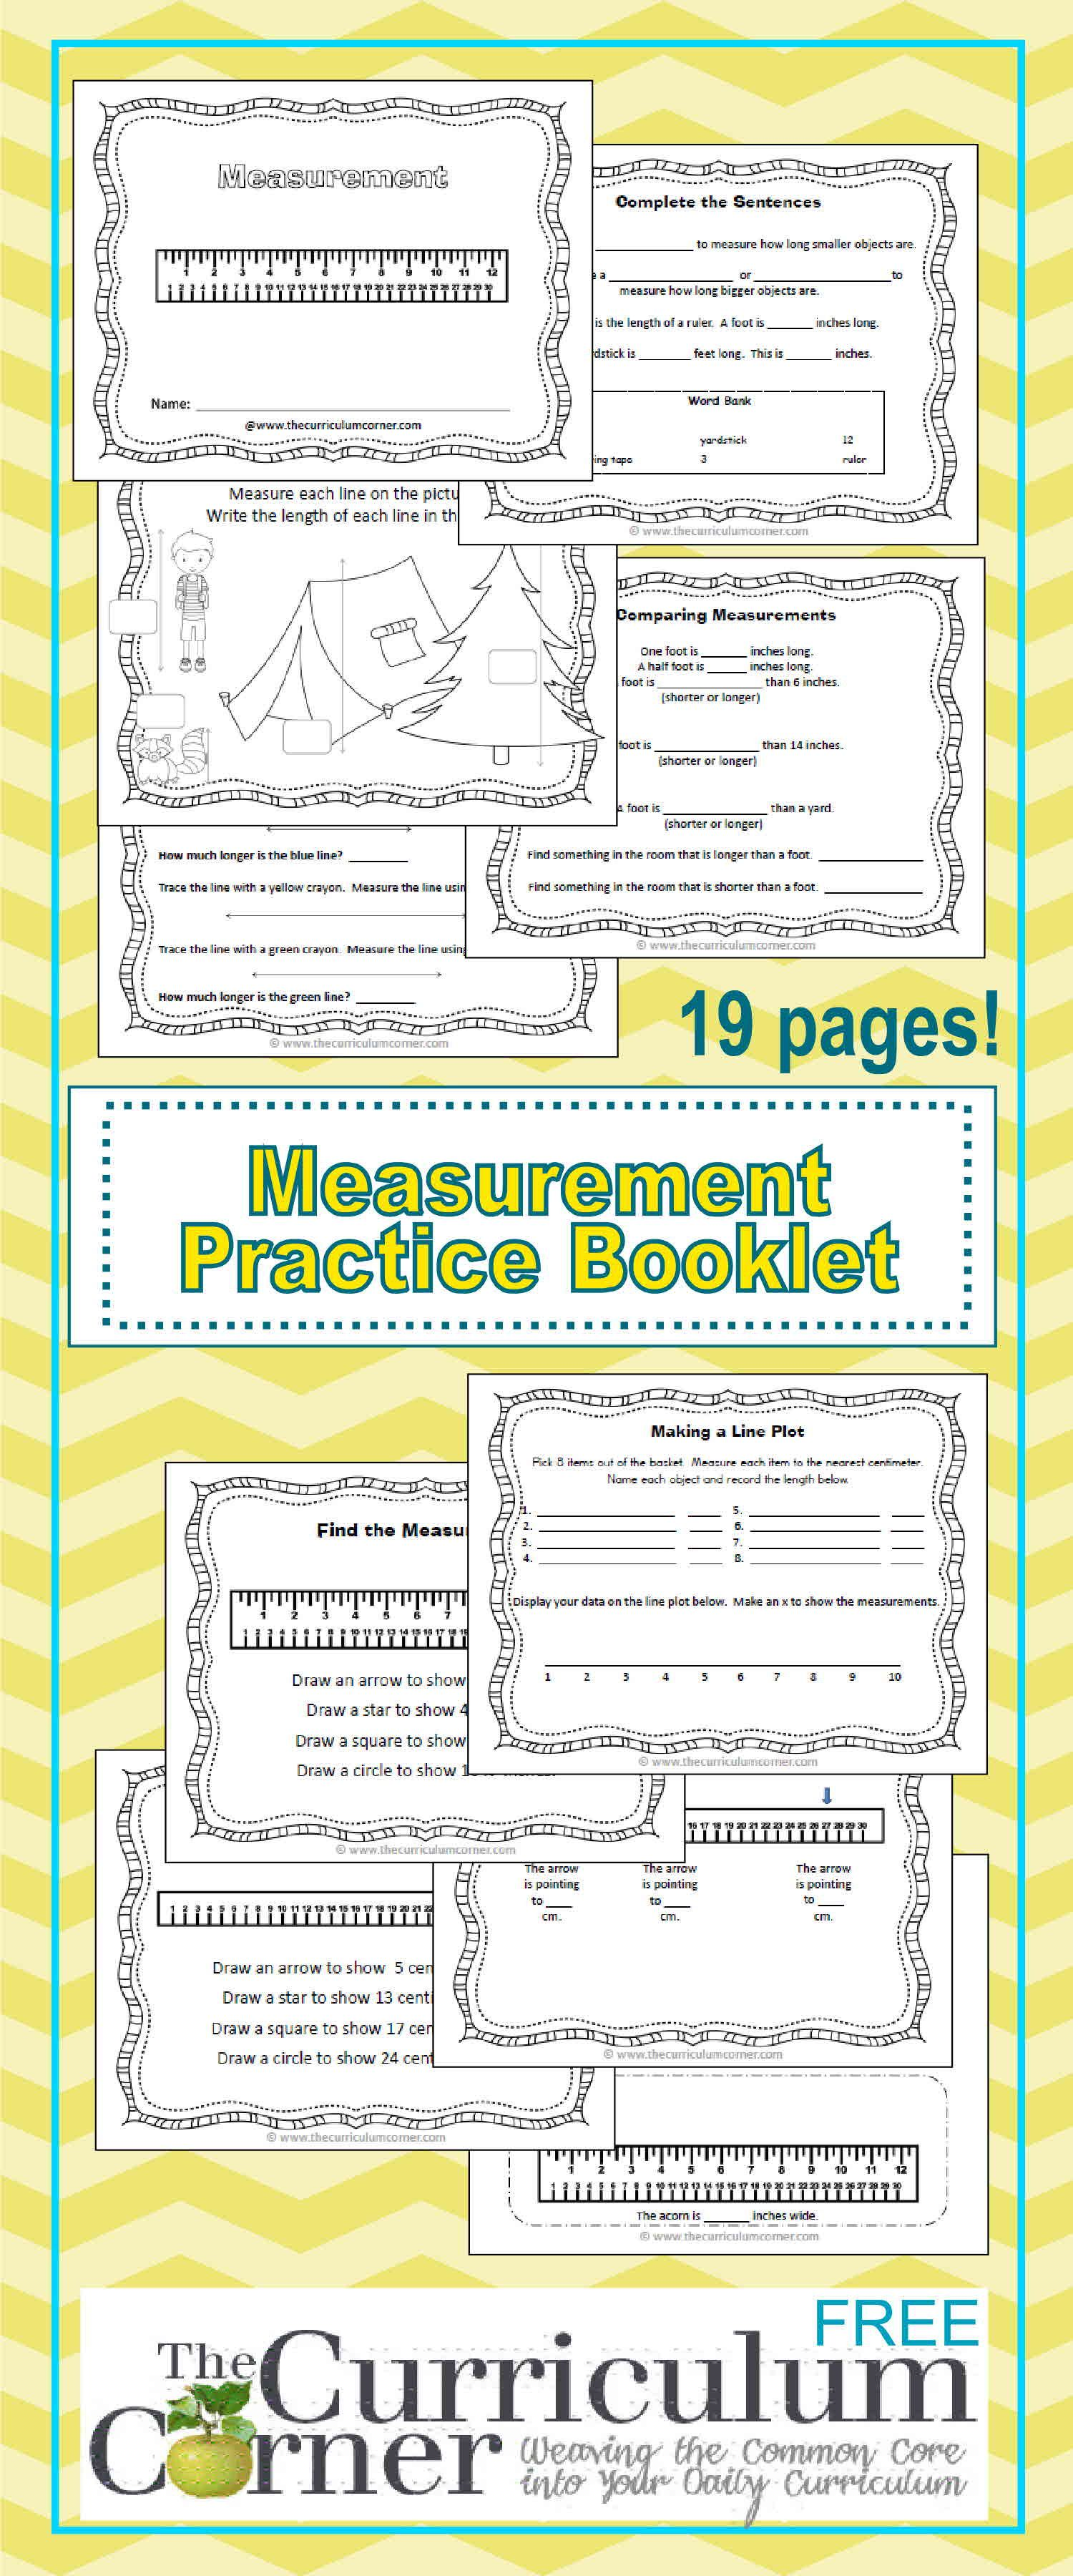 Linear Measurement Practice Booklet